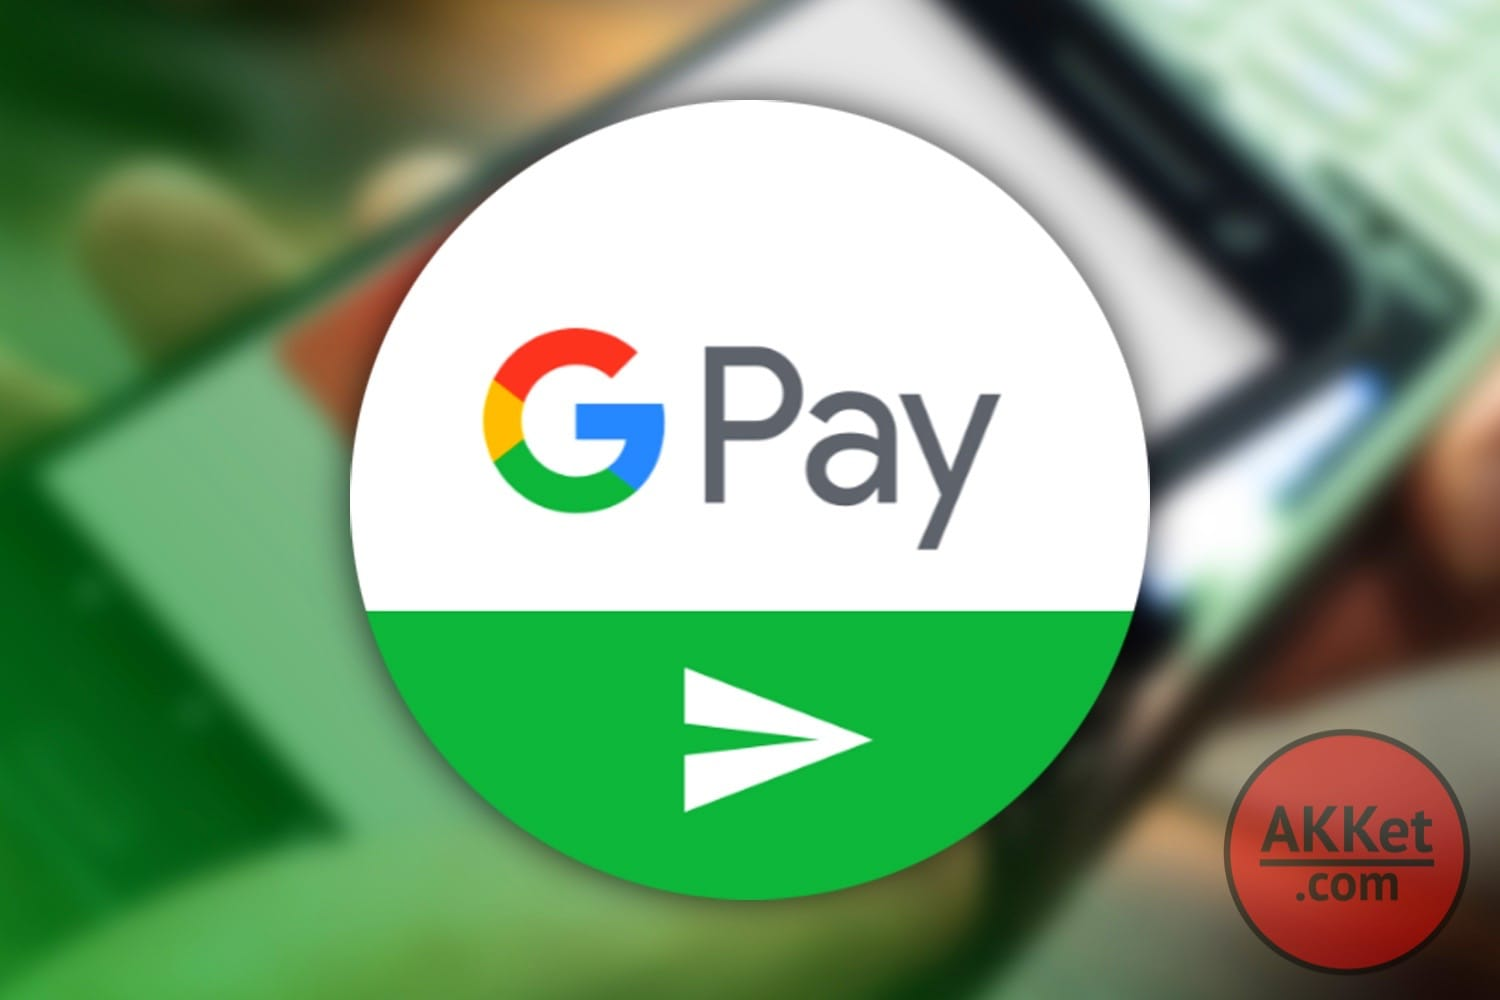 Google Pay заработала на Android, Windows 10, iOS, macOS и других ОС